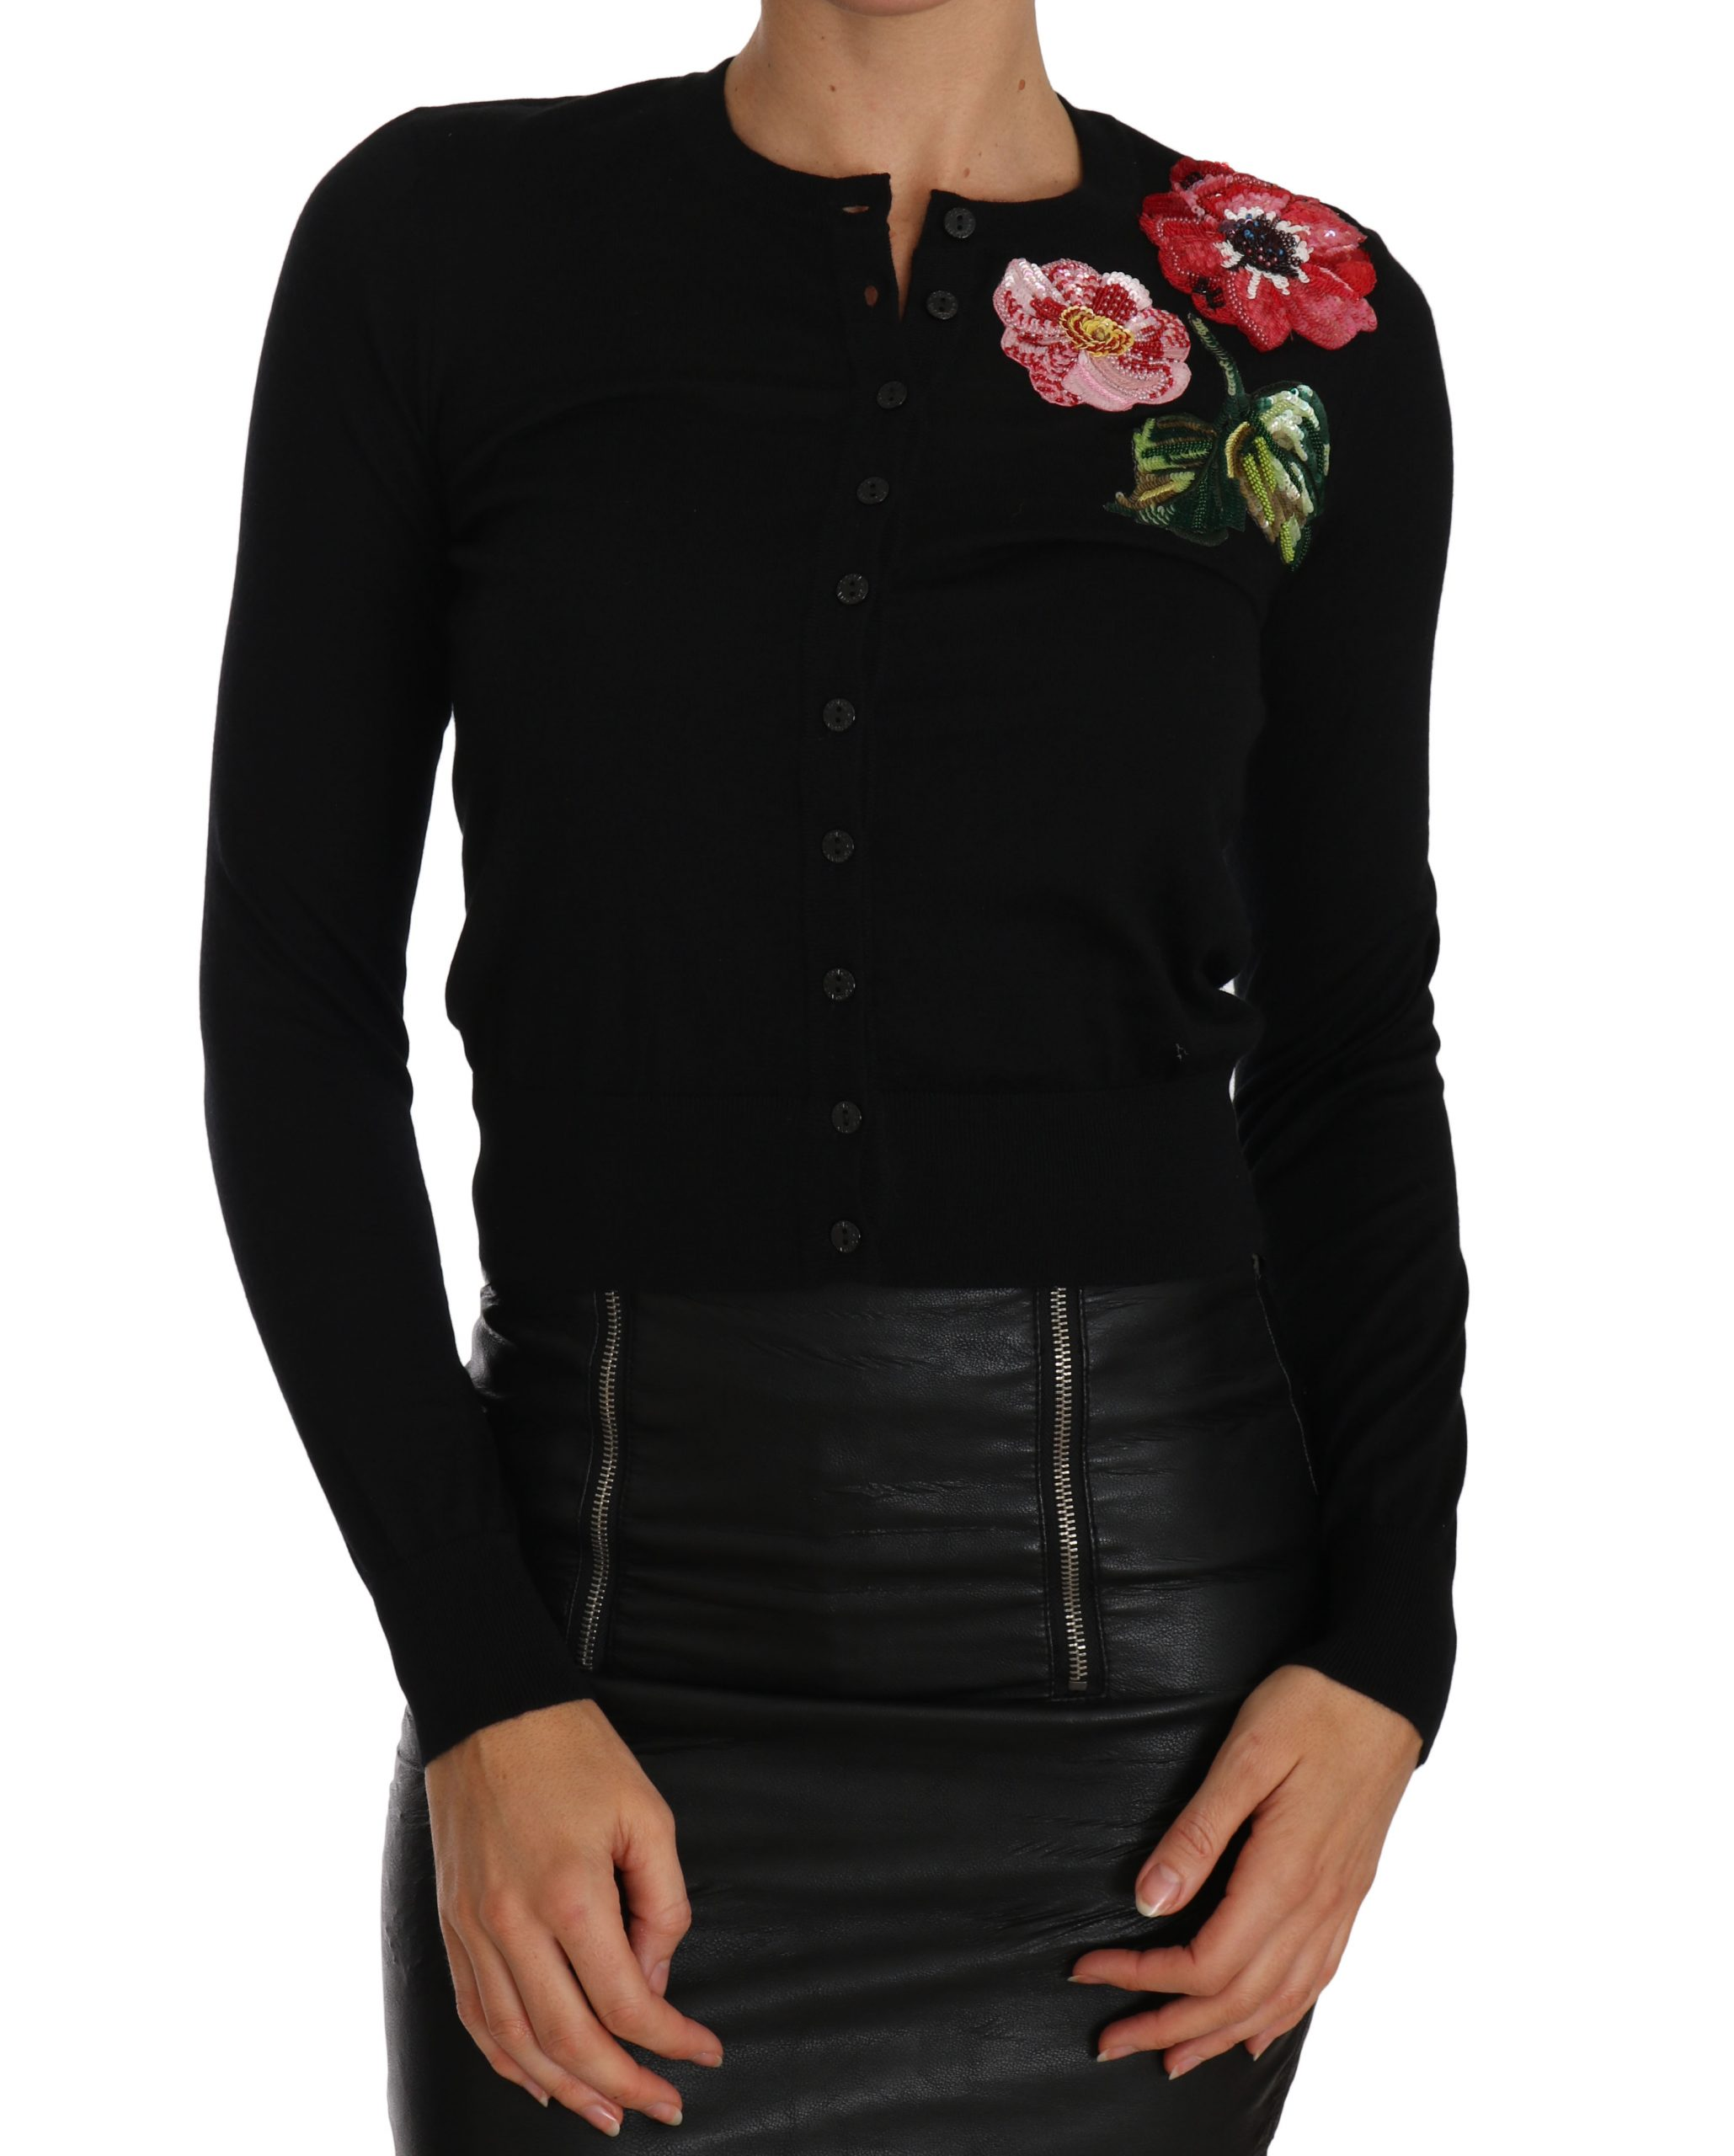 Dolce & Gabbana Women's Floral Embroidered Cardigan Black TSH2301 - IT40|S